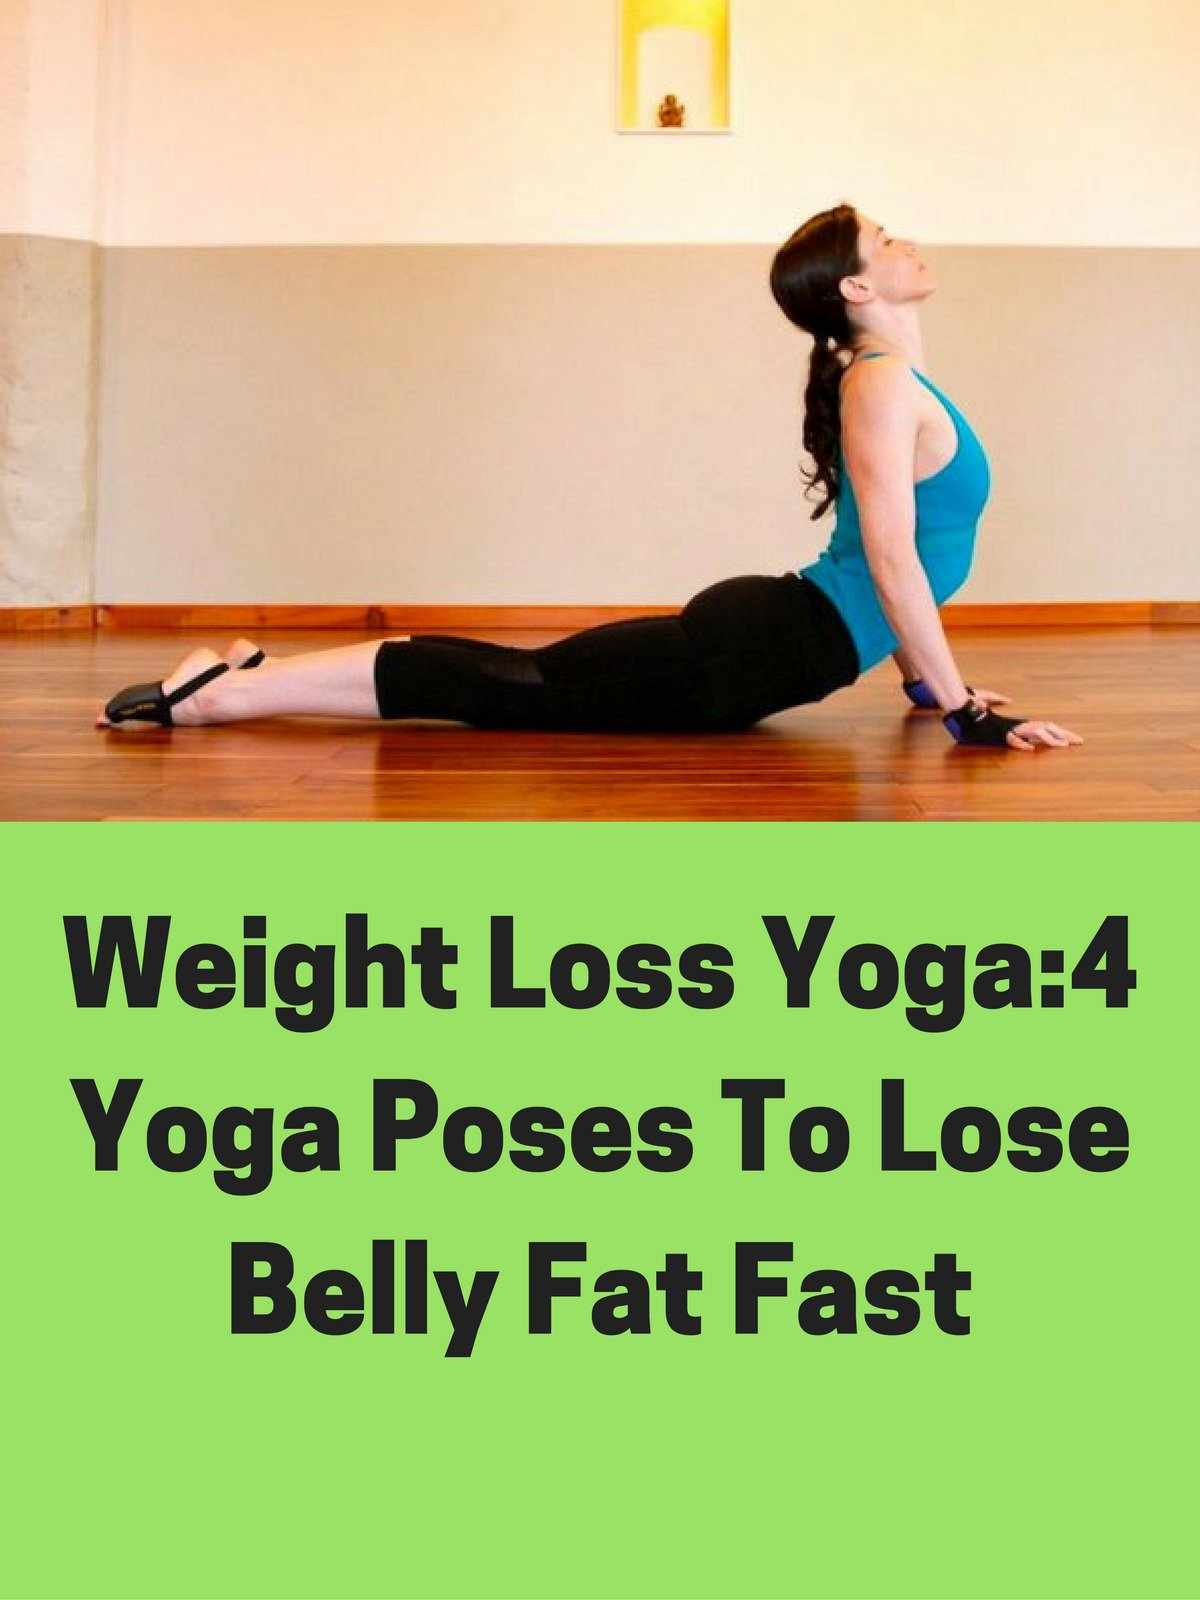 Watch Weight Loss Yoga 4 Yoga Poses To Lose Belly Fat Fast Prime Video